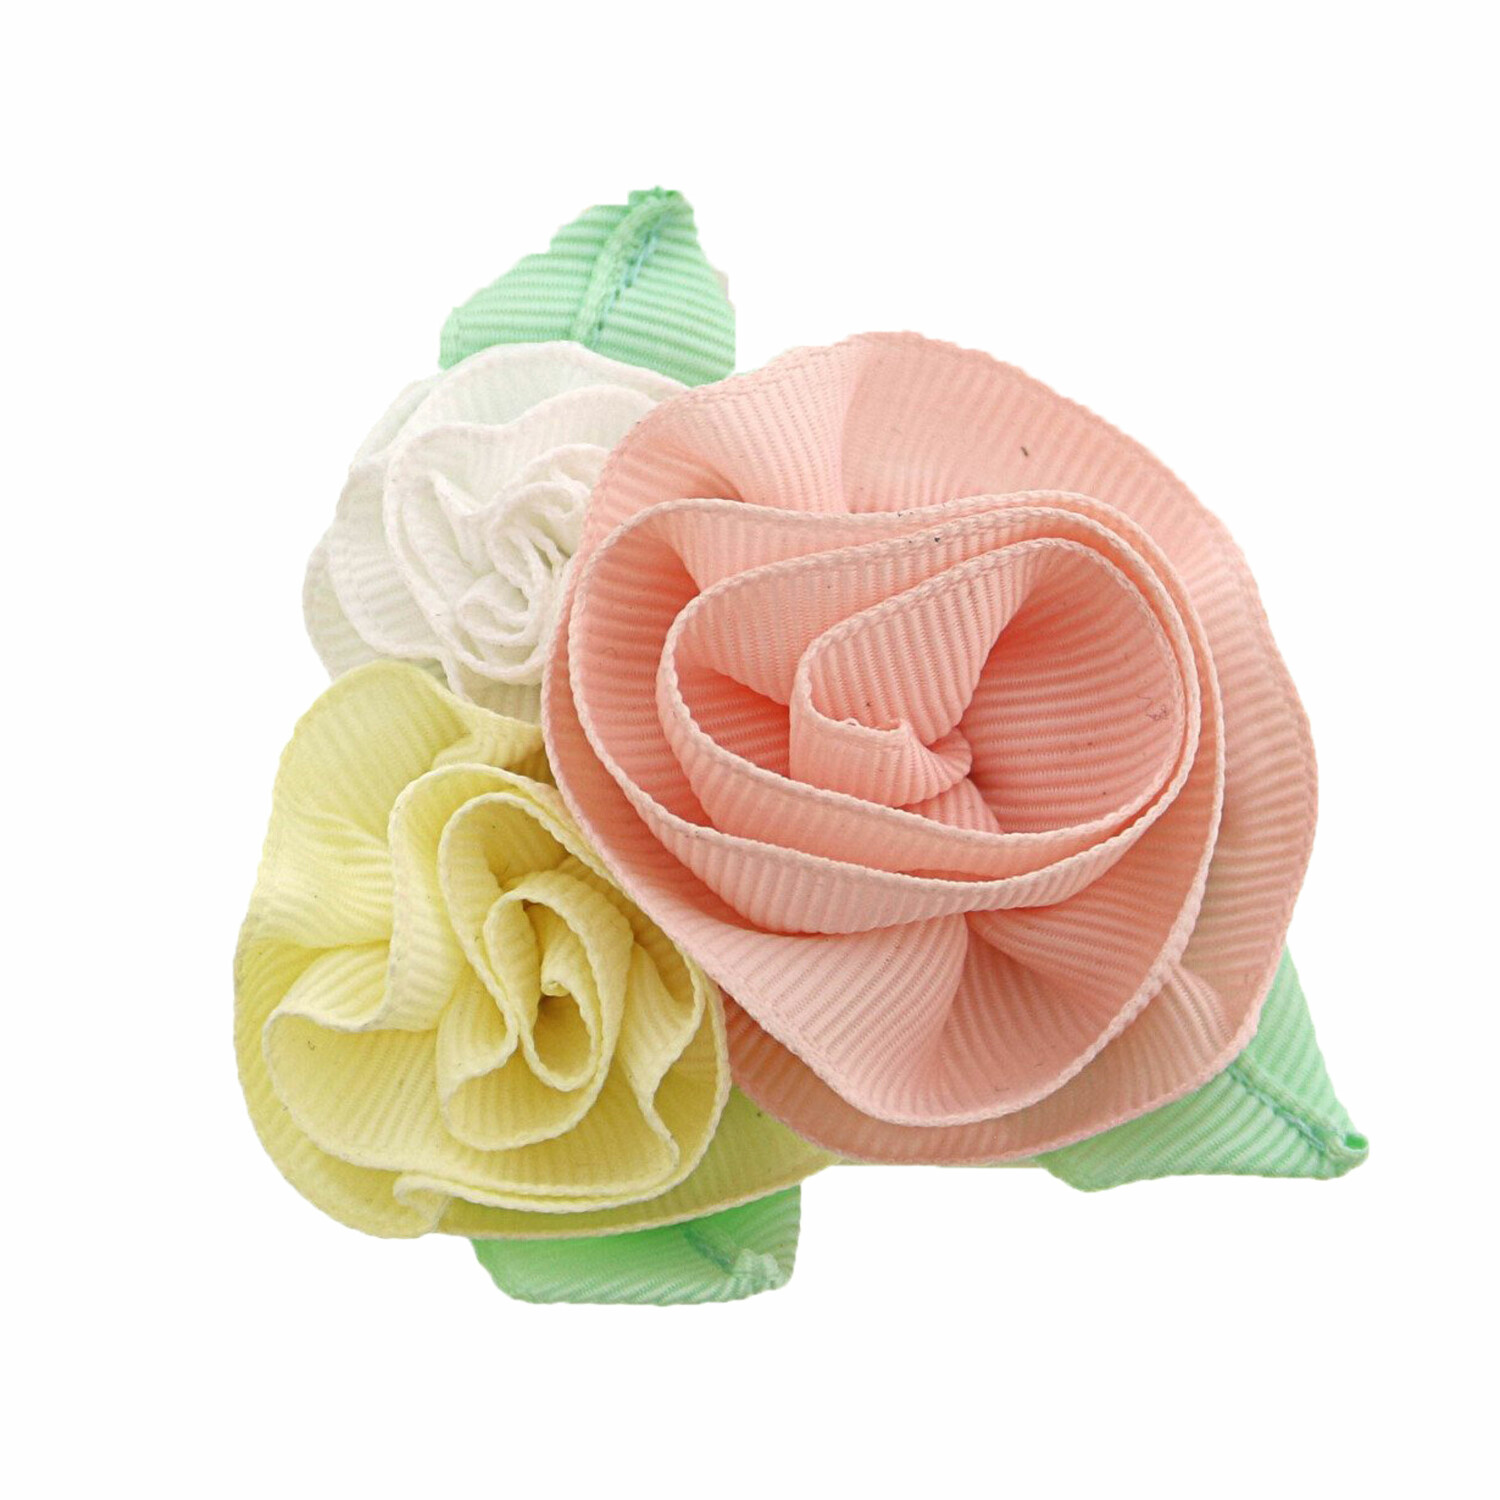 Janie And Jack Rosette Bouquet Barrette Hair Accessory - One Size - Petal Pink